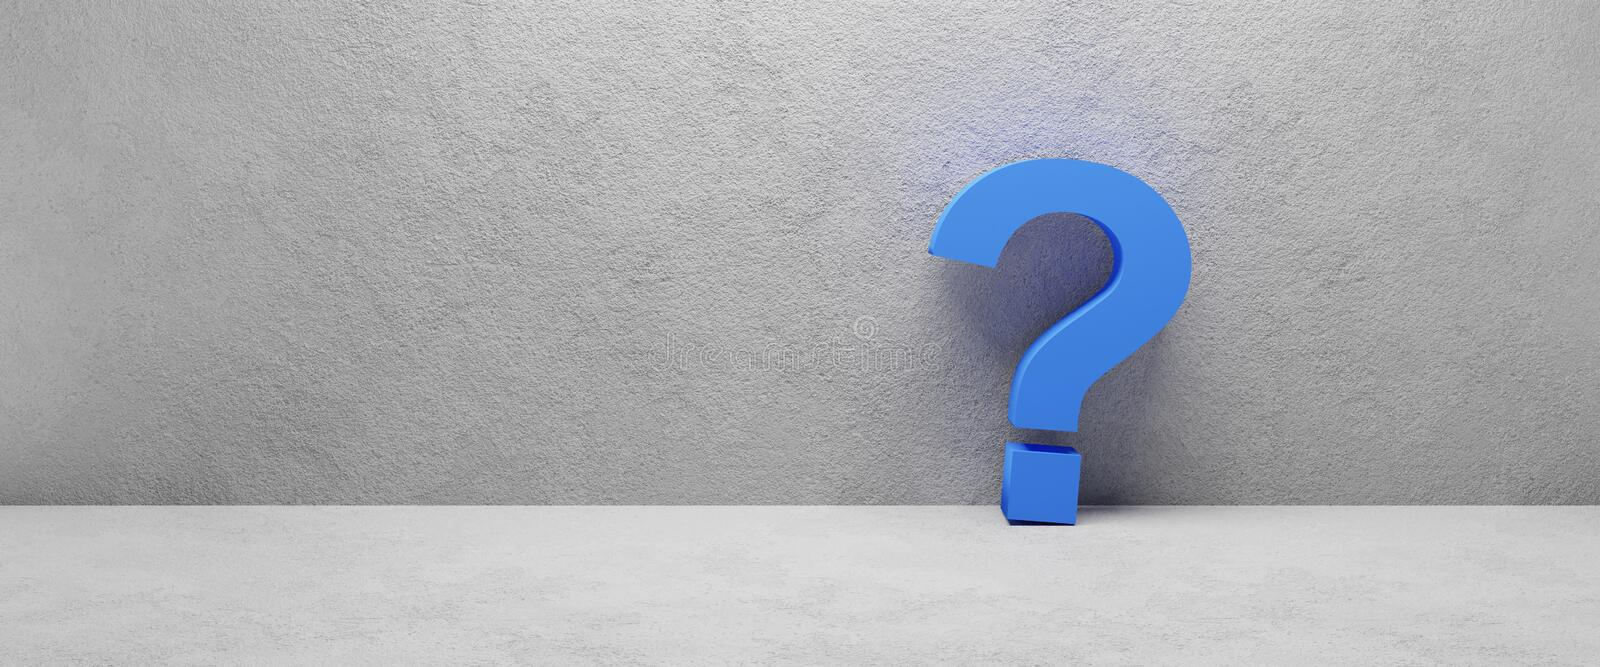 Blue question mark laying at concrete wall - cgi 3d render image. Illustration stock illustration